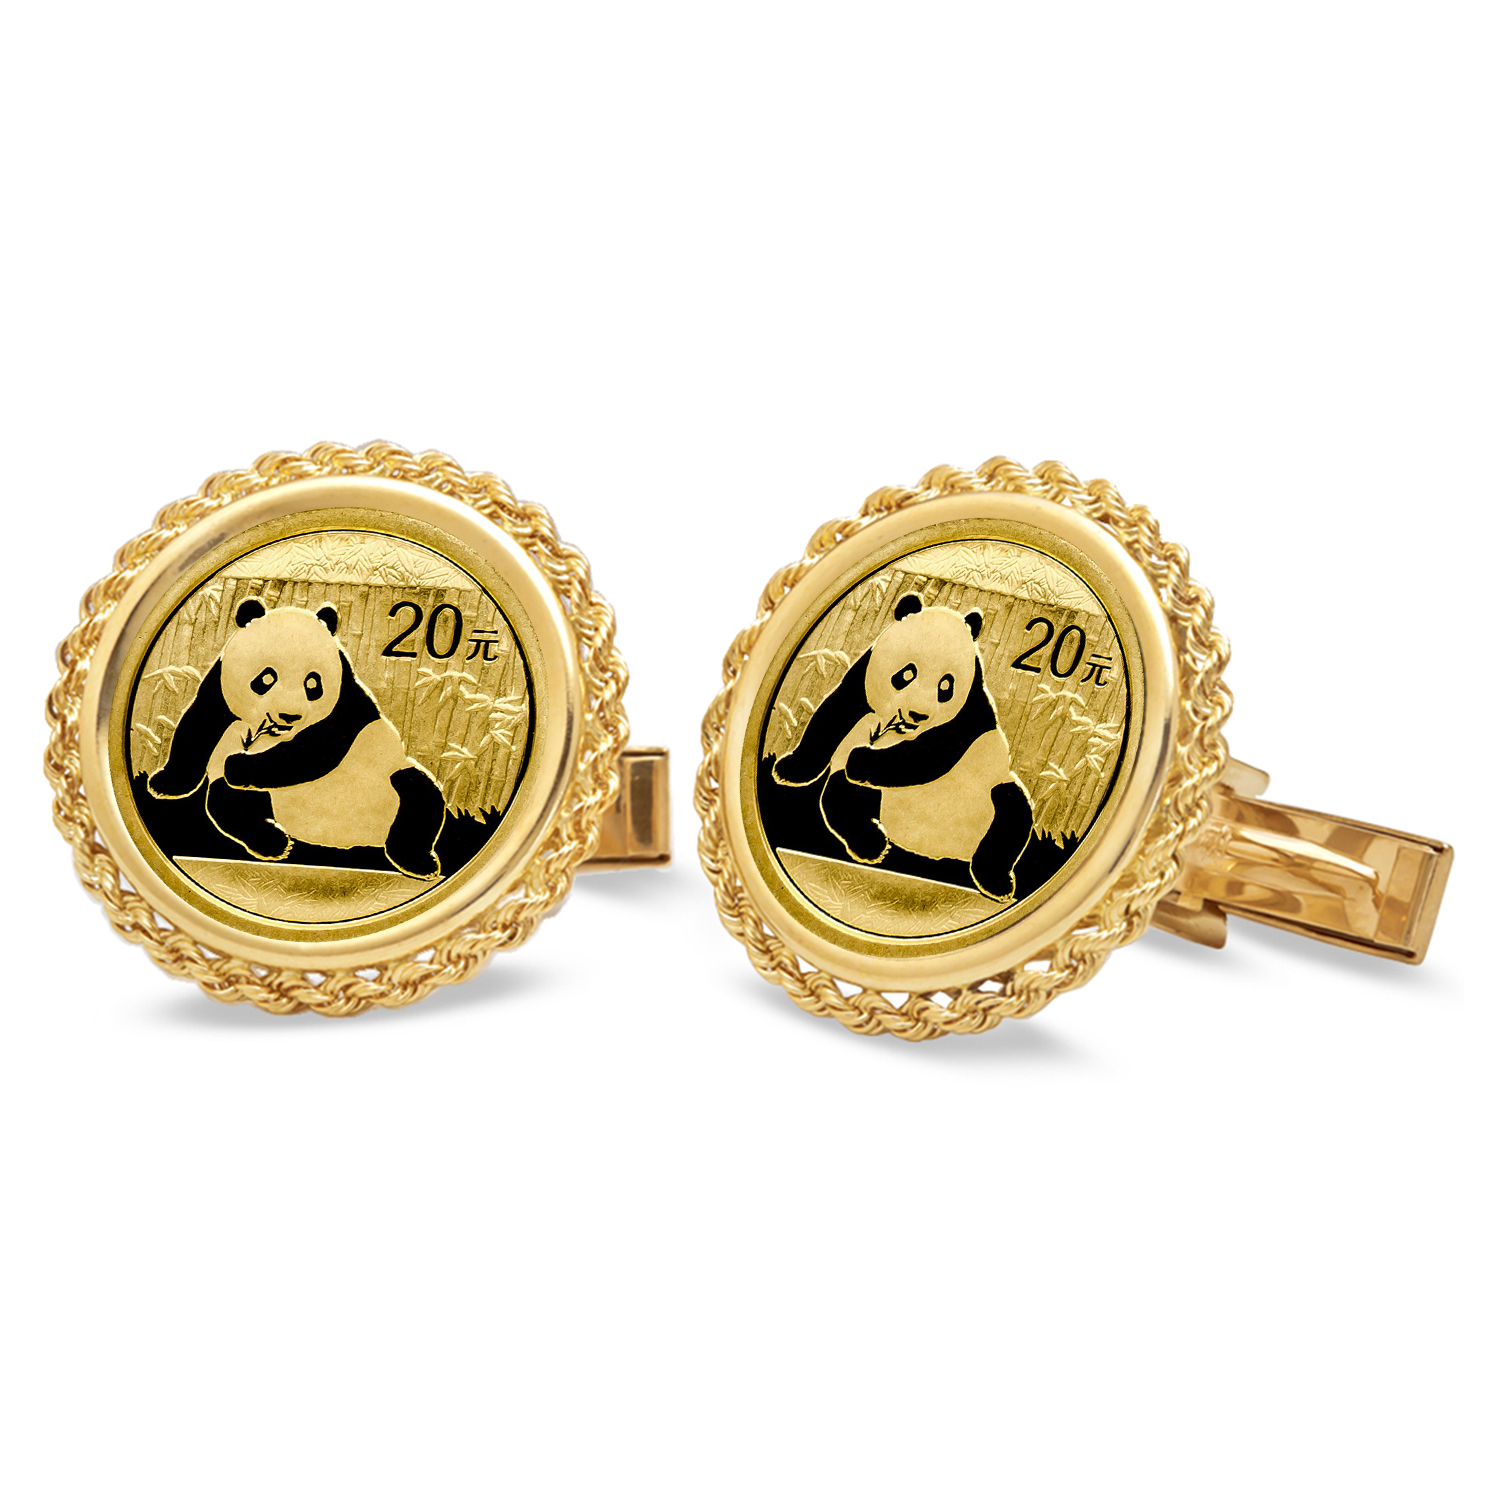 14k Gold Rope Polished Coin Cuff Links - 14mm